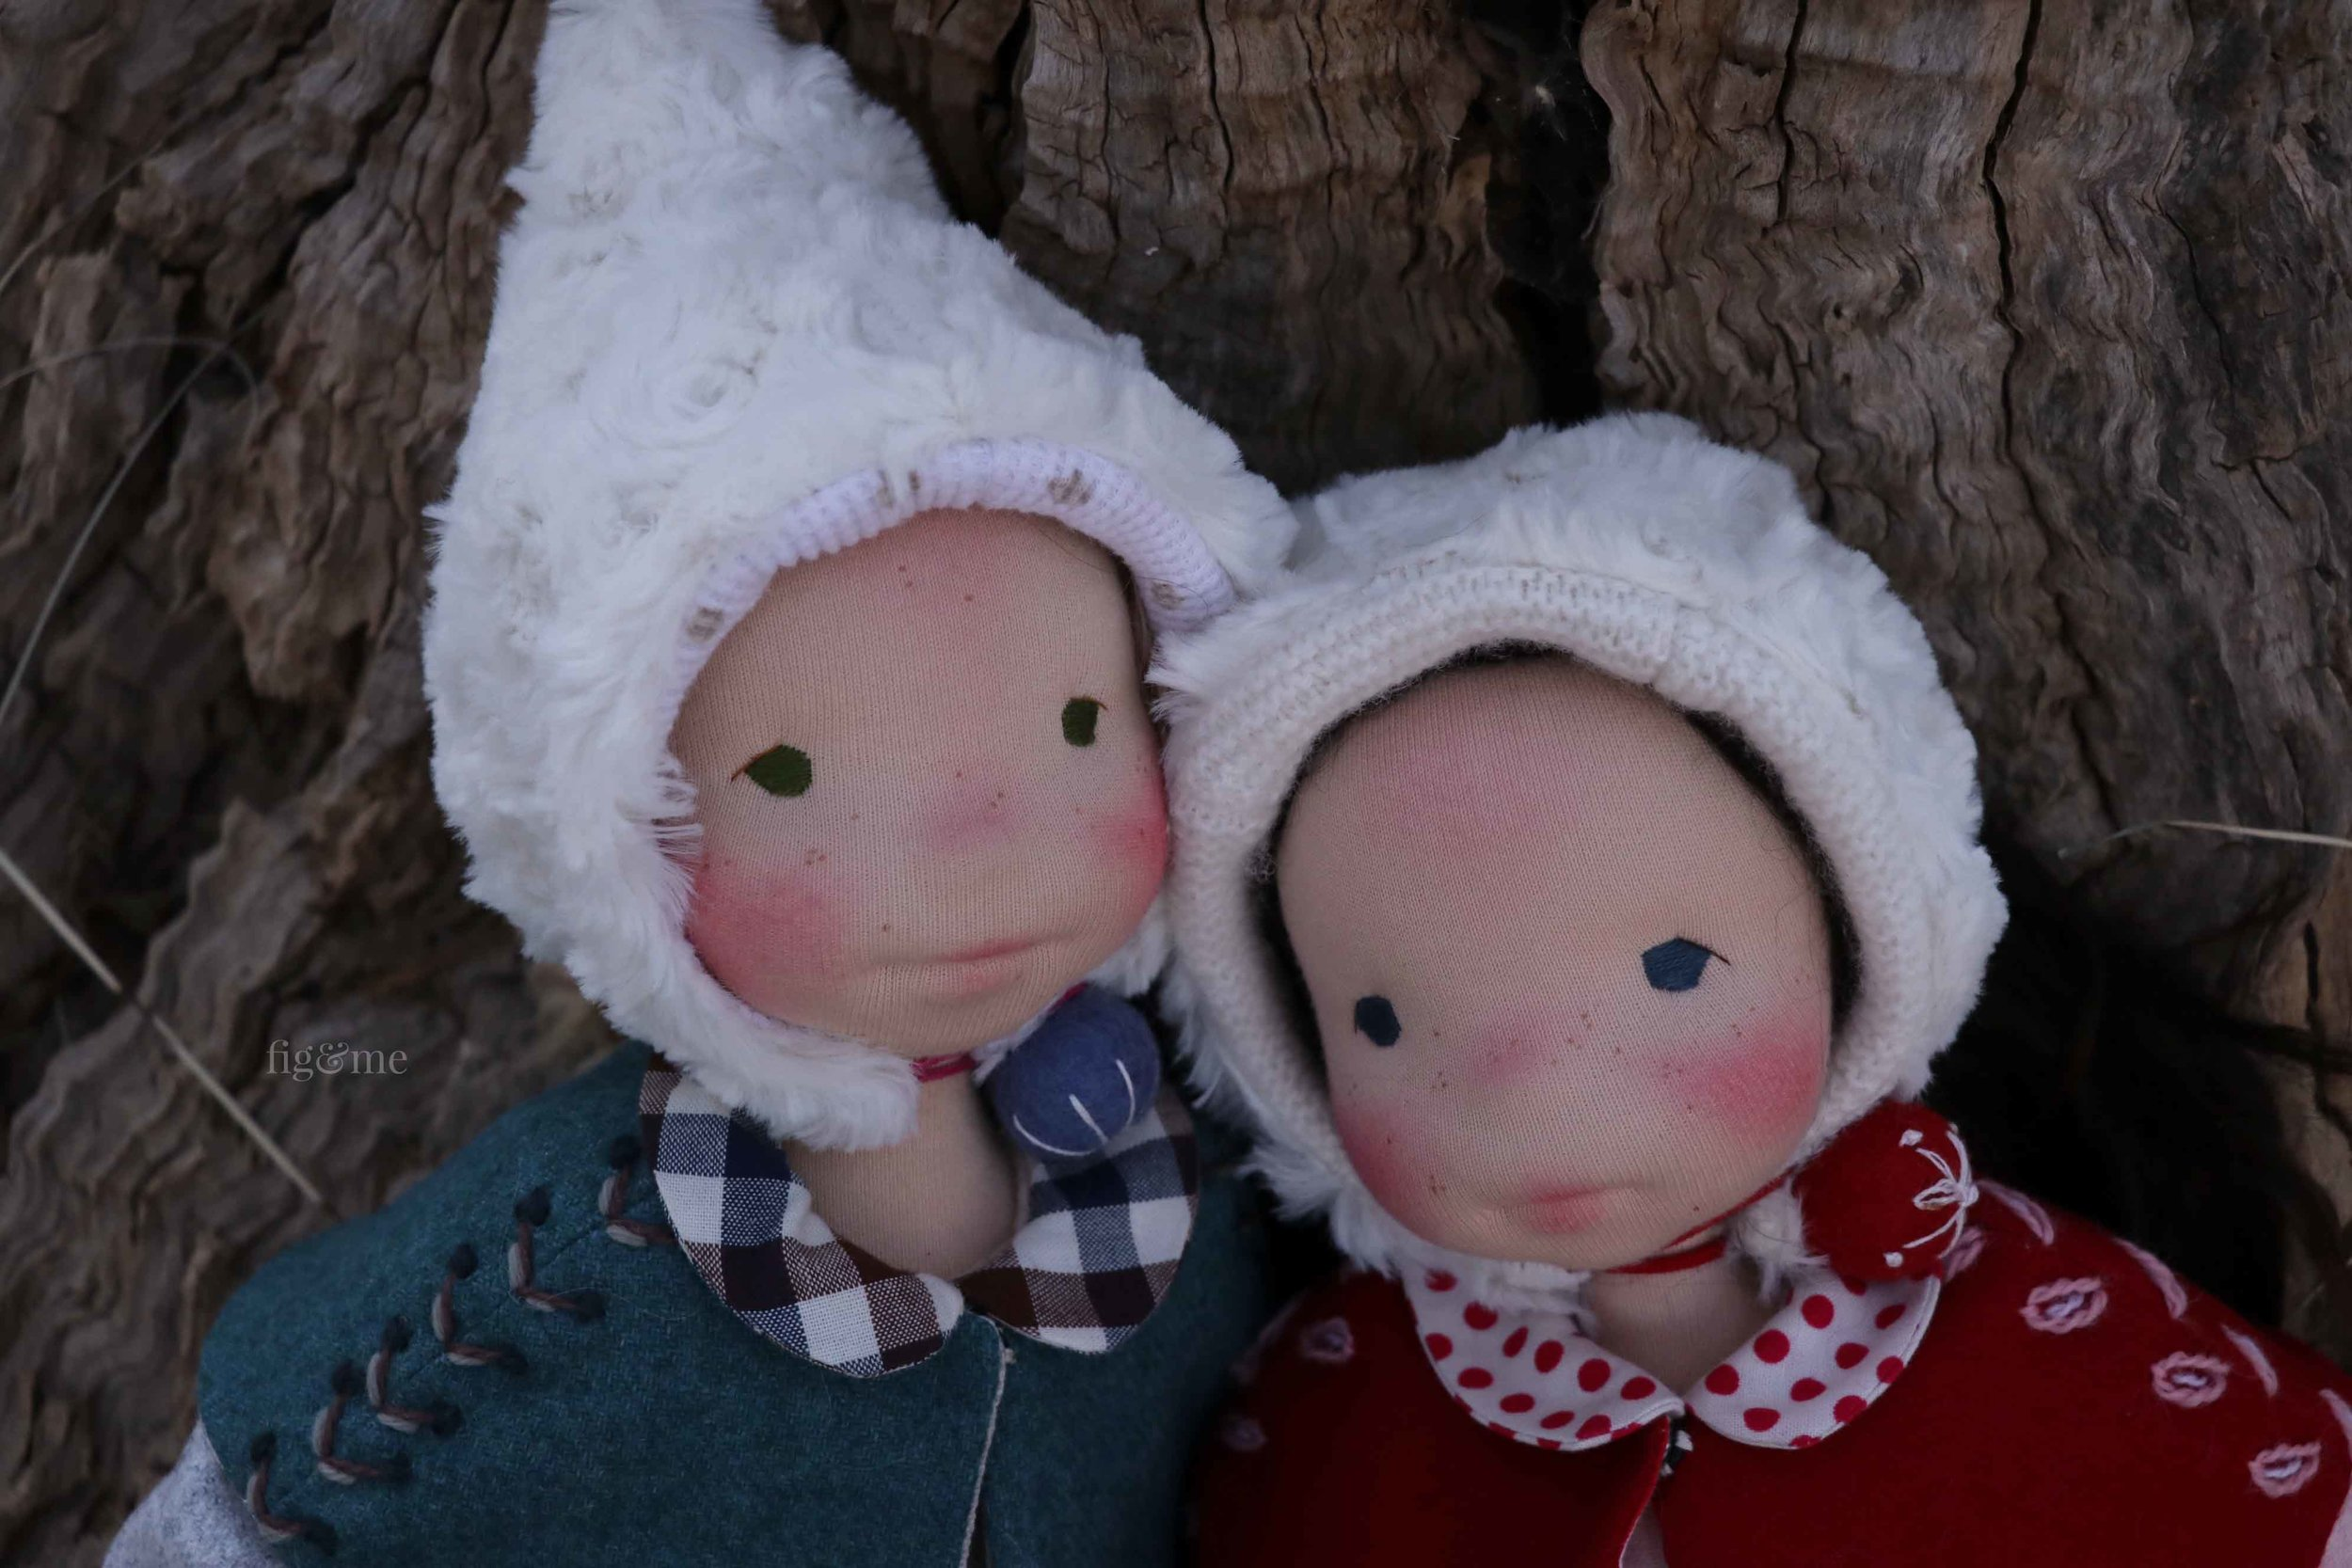 Snow White and Rose Red, two Petite Figs by Fig and Me.